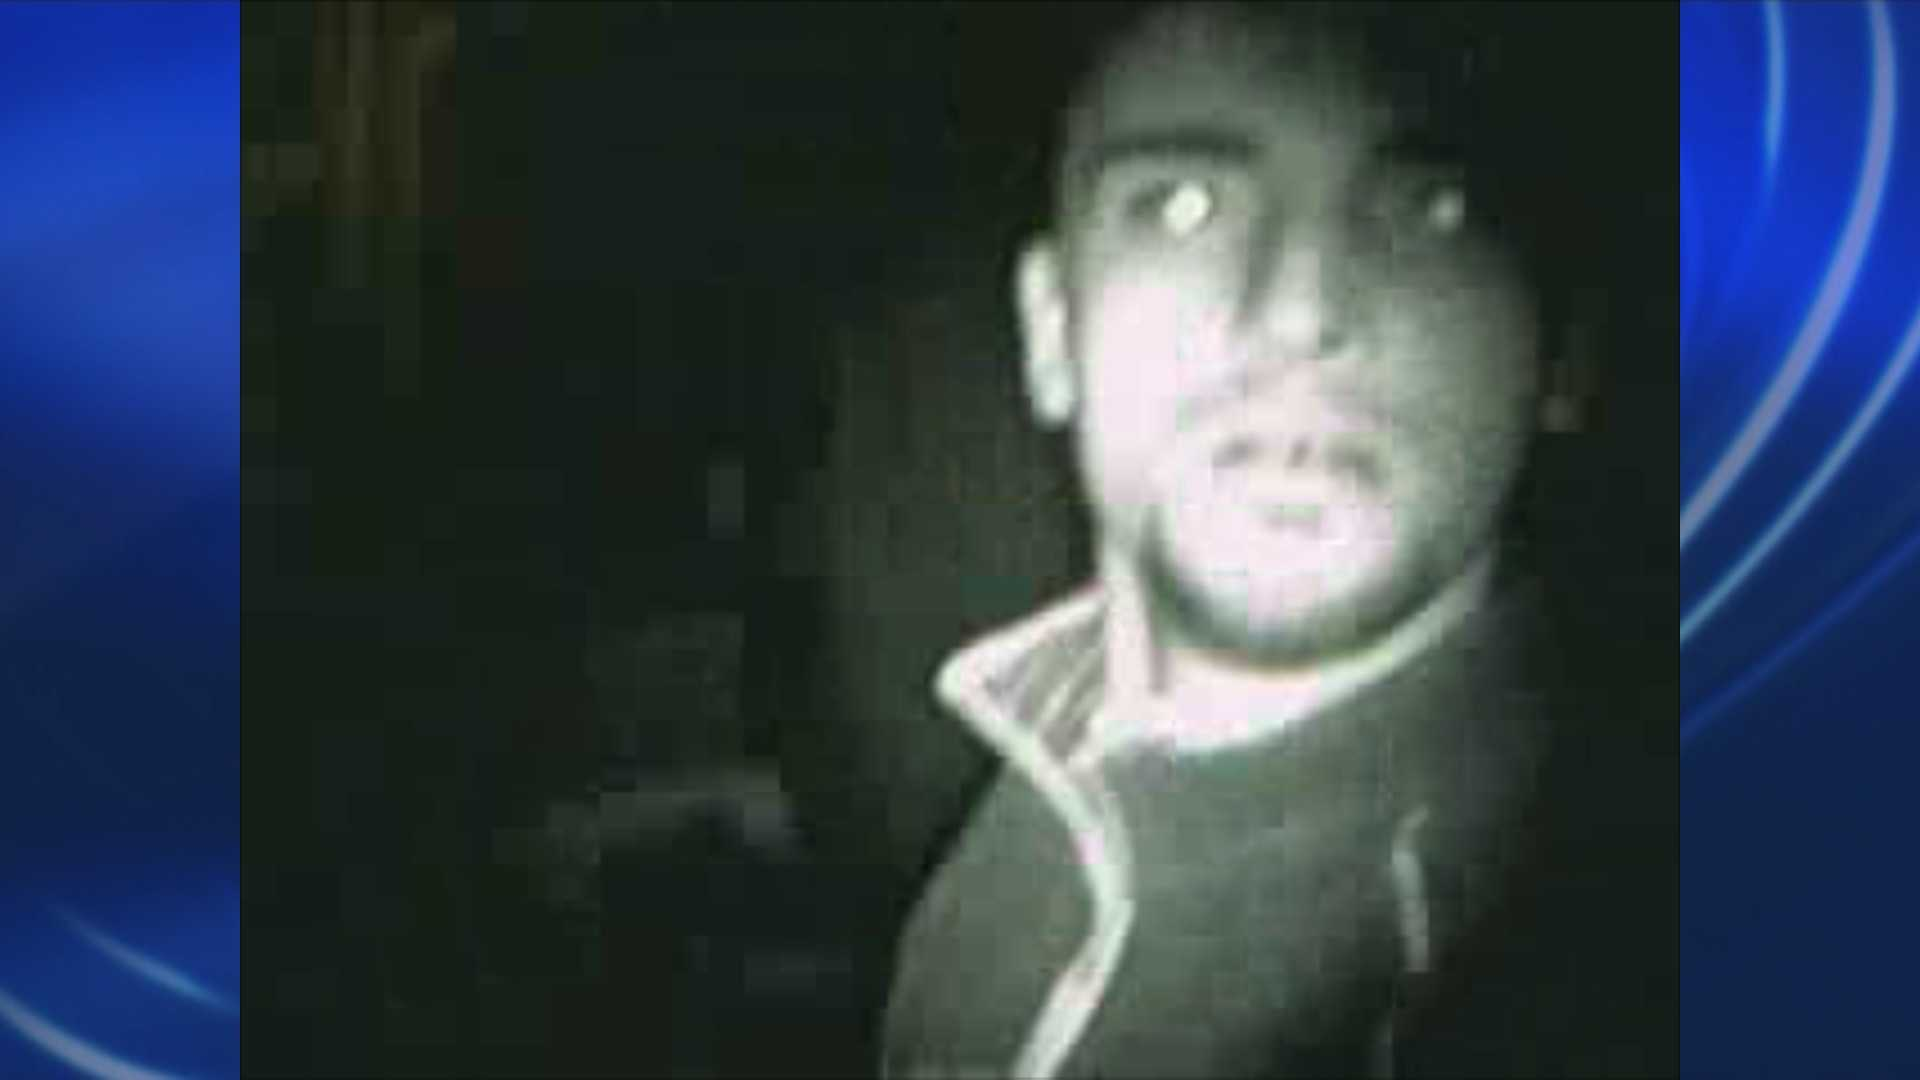 100712 Video captures burglar in the act, police say